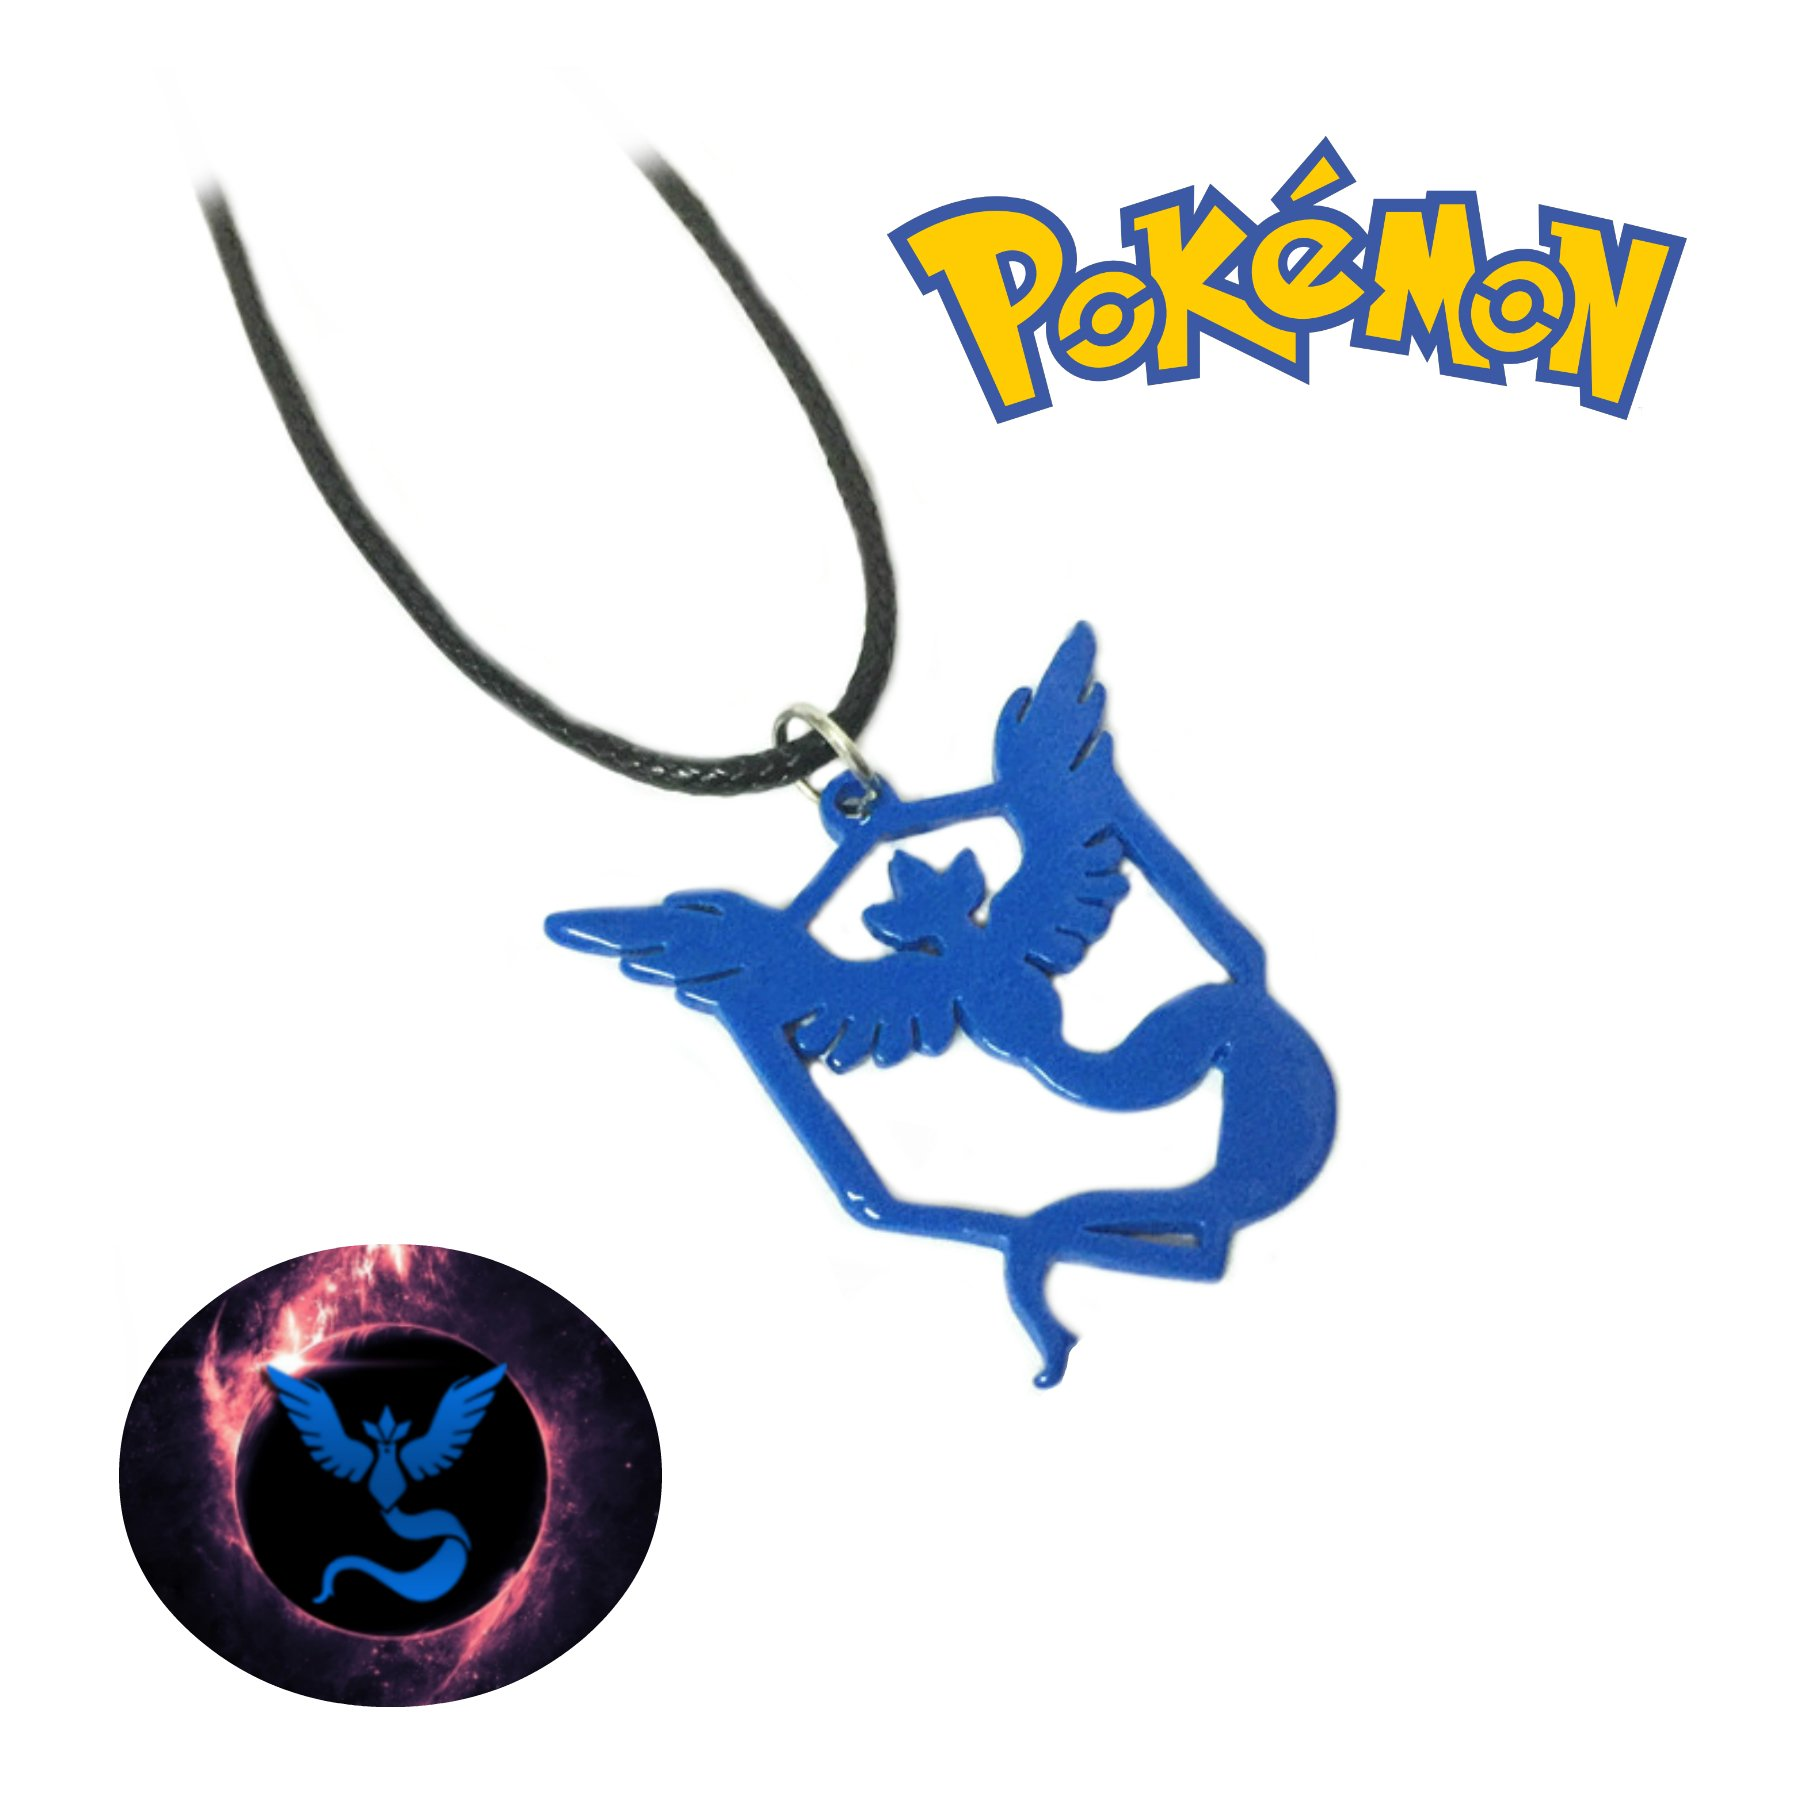 Pokemon Go Mystic Necklace Pendant Game Anime Cosplay by Athena Brands by Athena Brand (Image #3)